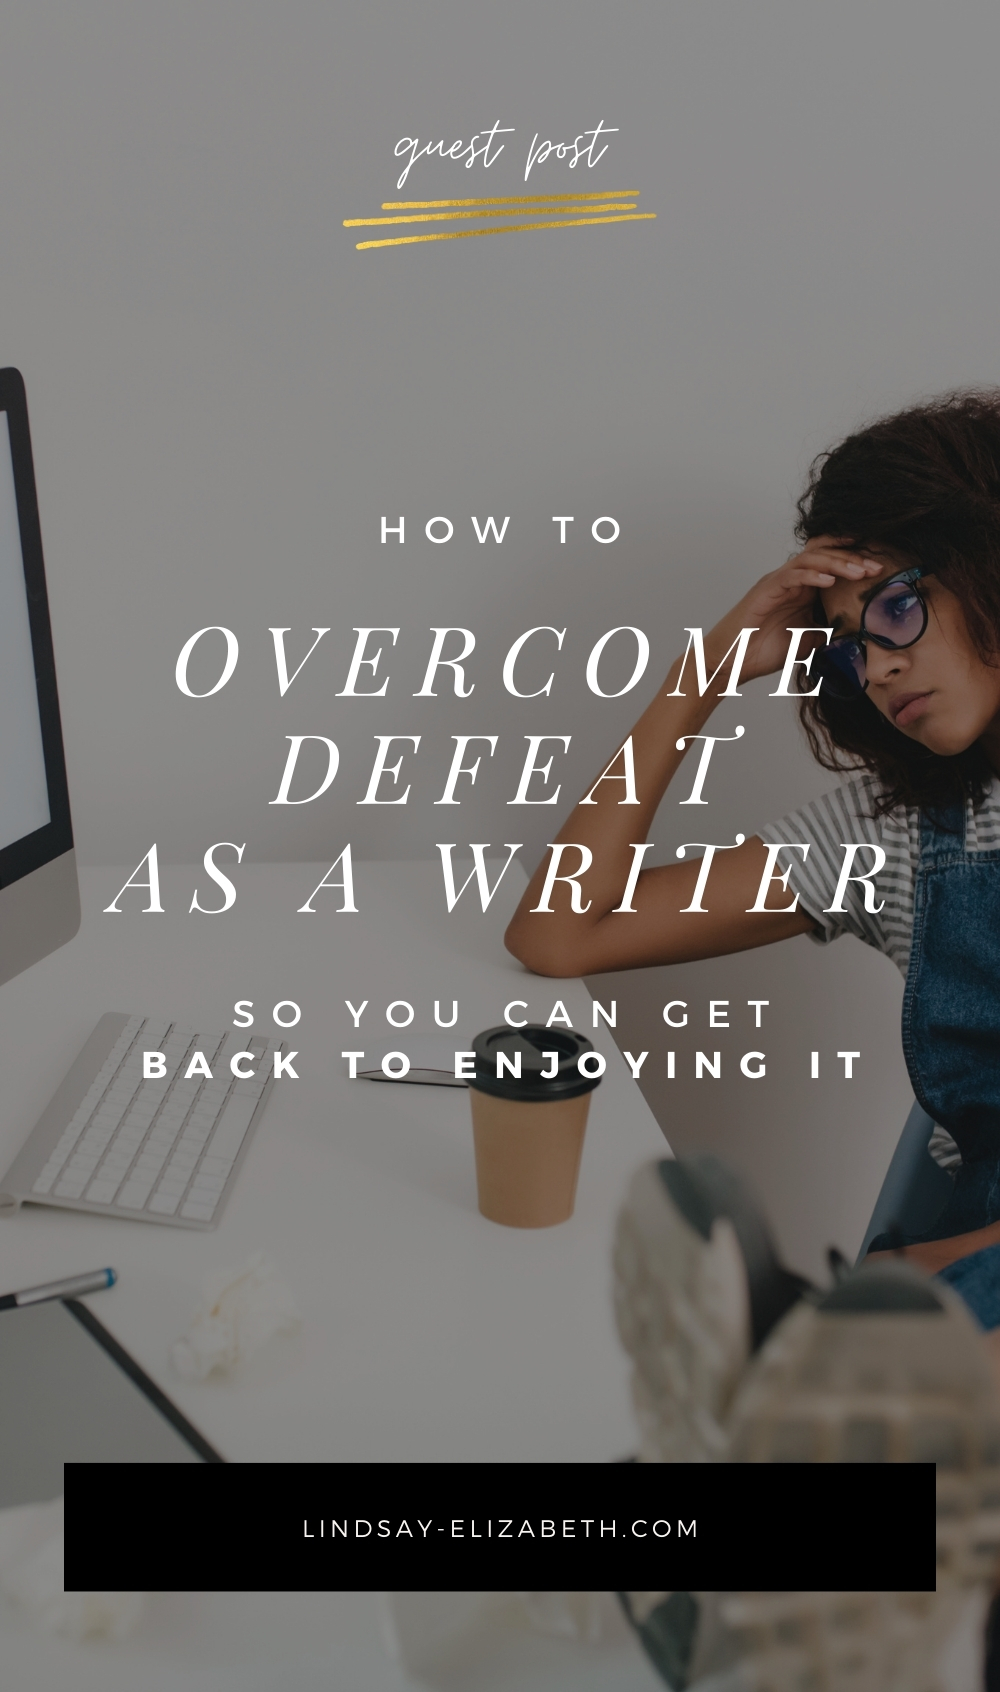 Feeling defeated on your writing journey? You're not alone — it's a totally common experience among writers. In this guest post, Ashton Mathai shares her tips on how to overcome defeat as a writer so you don't get stuck going in circles and can get back to enjoying the process of writing a book. | writing tips / writing advice / authors / writing fiction / creative writing / book writing